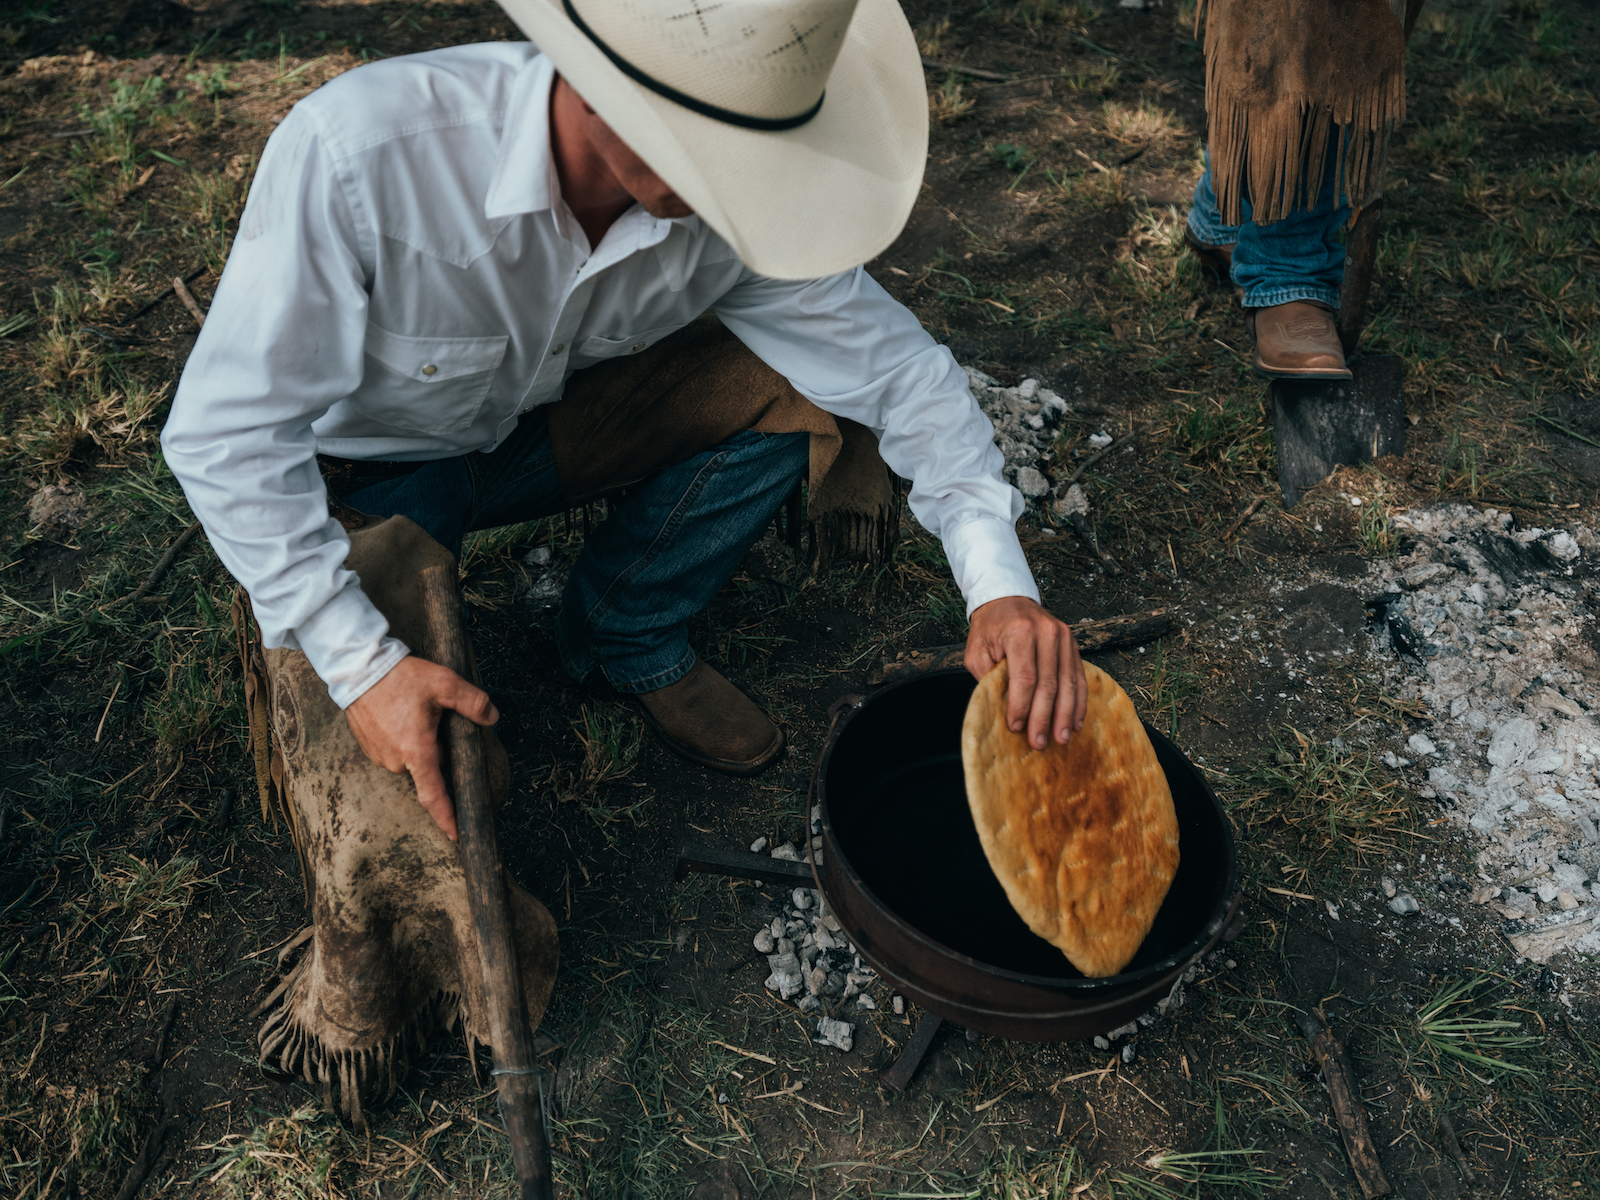 How to Make Pan de Campo, A Recipe for King Ranch Cow Camp Bread